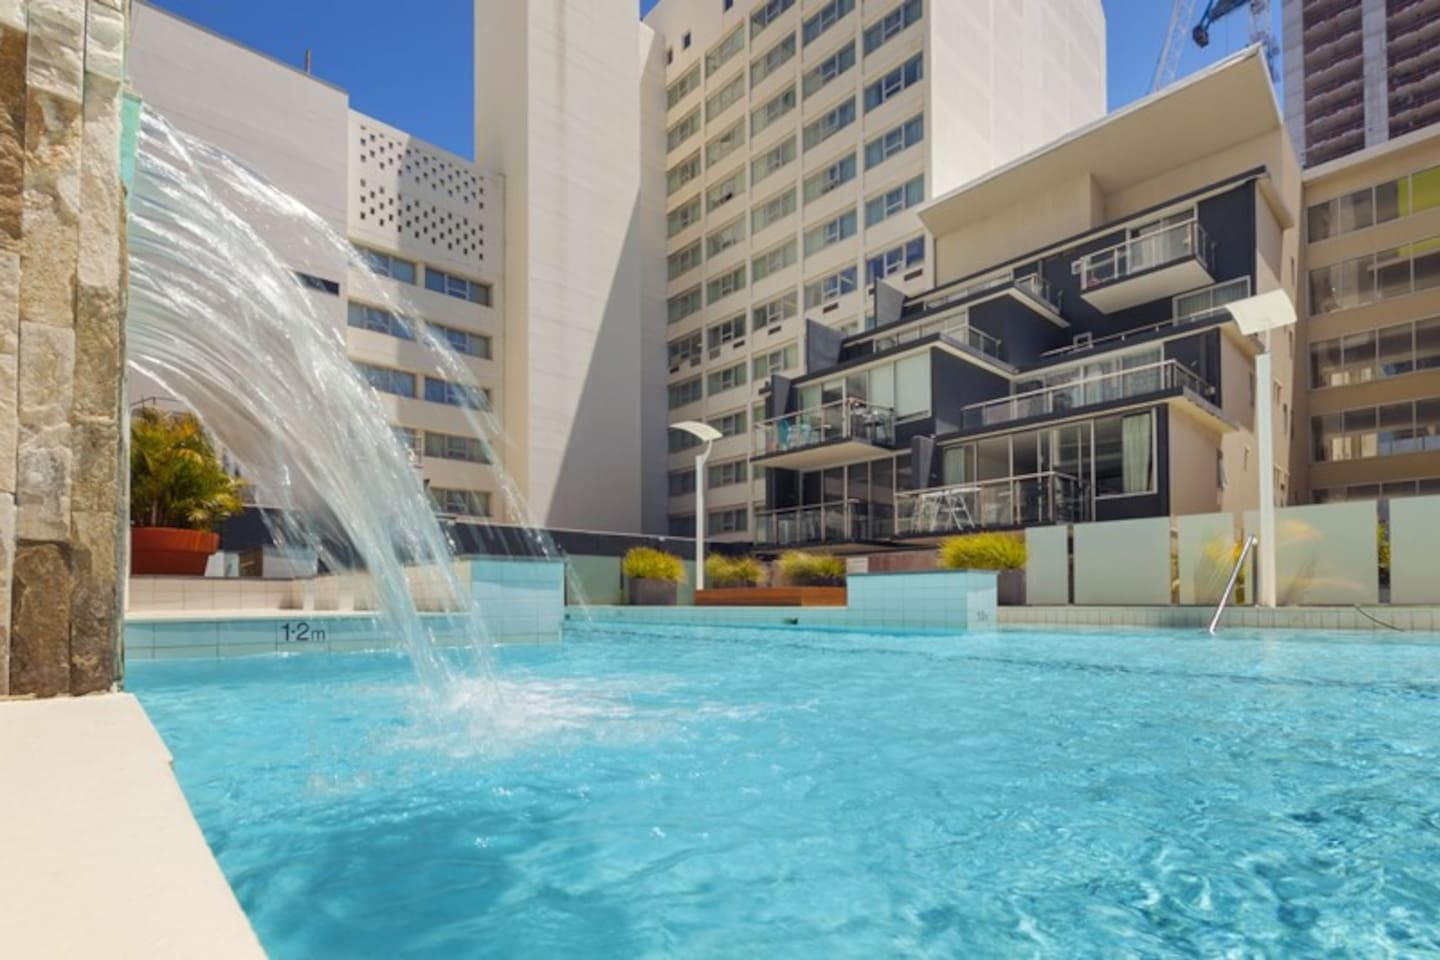 Refresh yourself in the complex pool